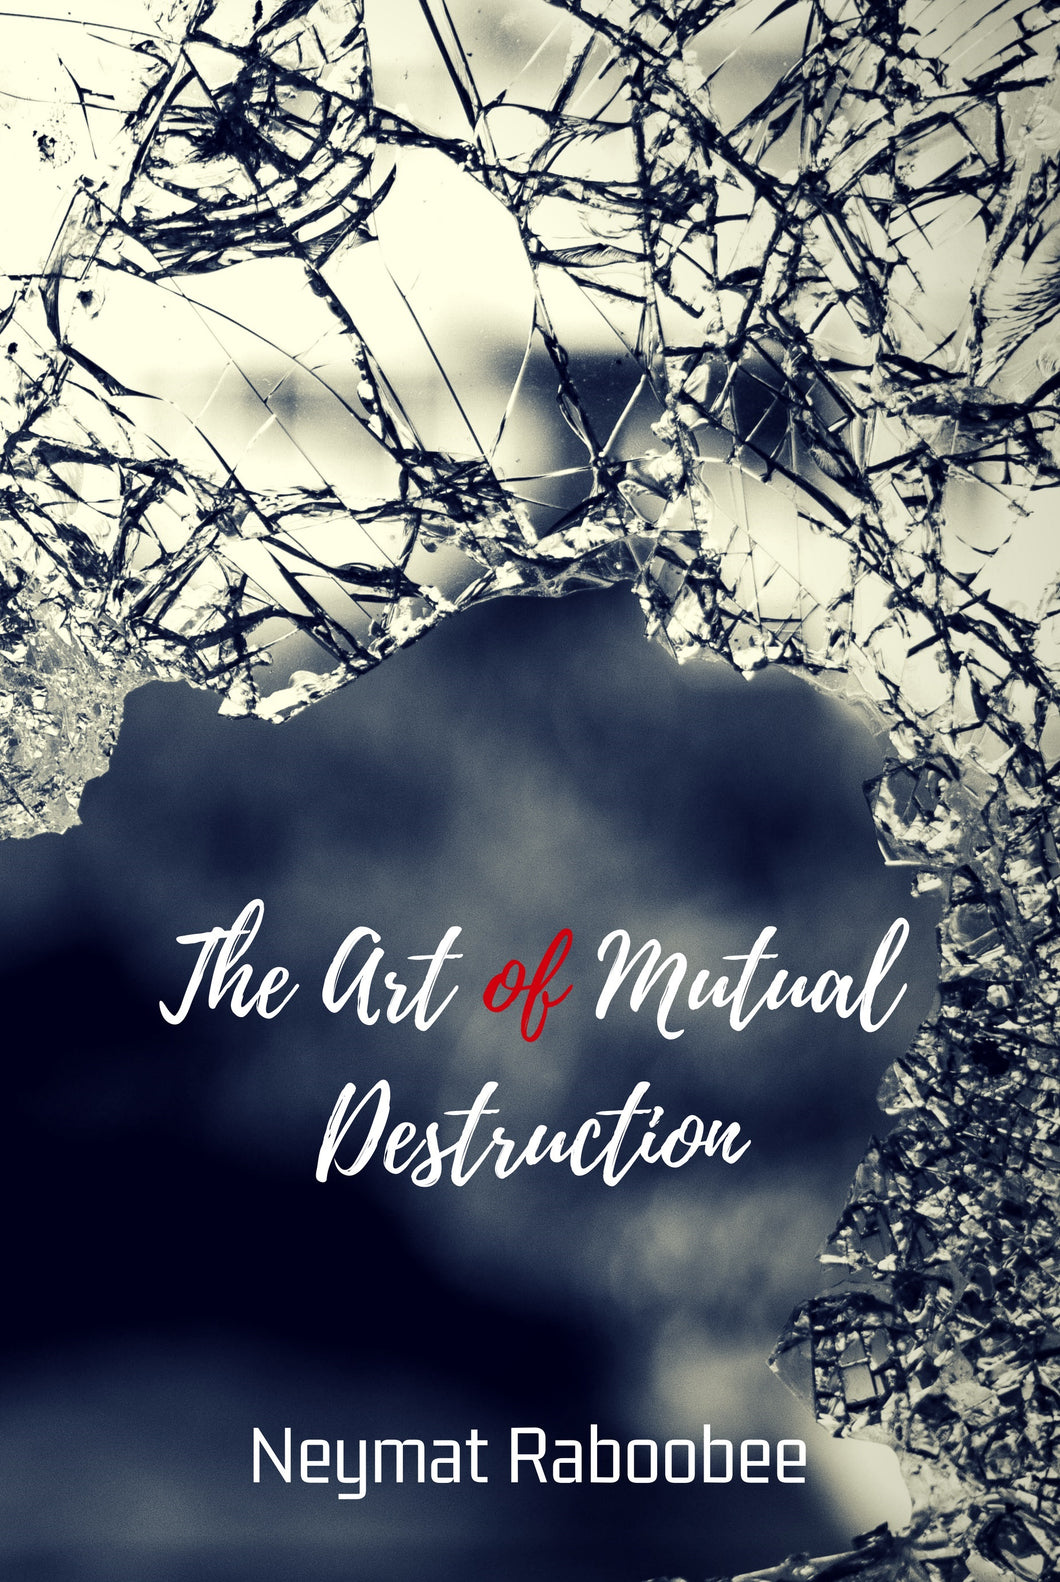 The Art of Mutual Destruction by NEYMAT RABOOBEE - Baitul Hikmah